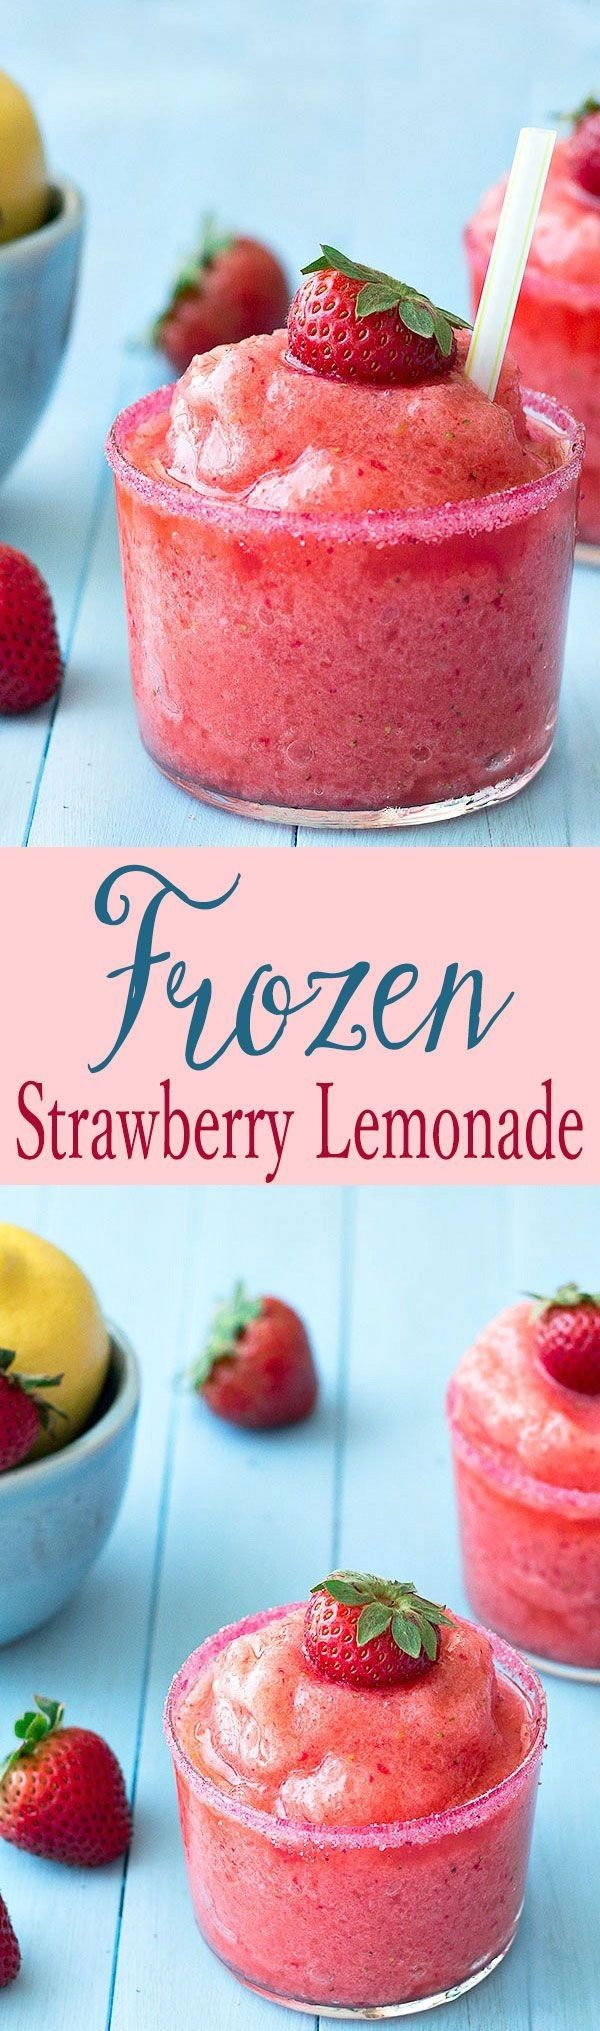 This frozen strawberry lemonade is so easy to make, full of fresh strawberries and tart lemons. Not too sour or too sweet, just perfect! #frozen